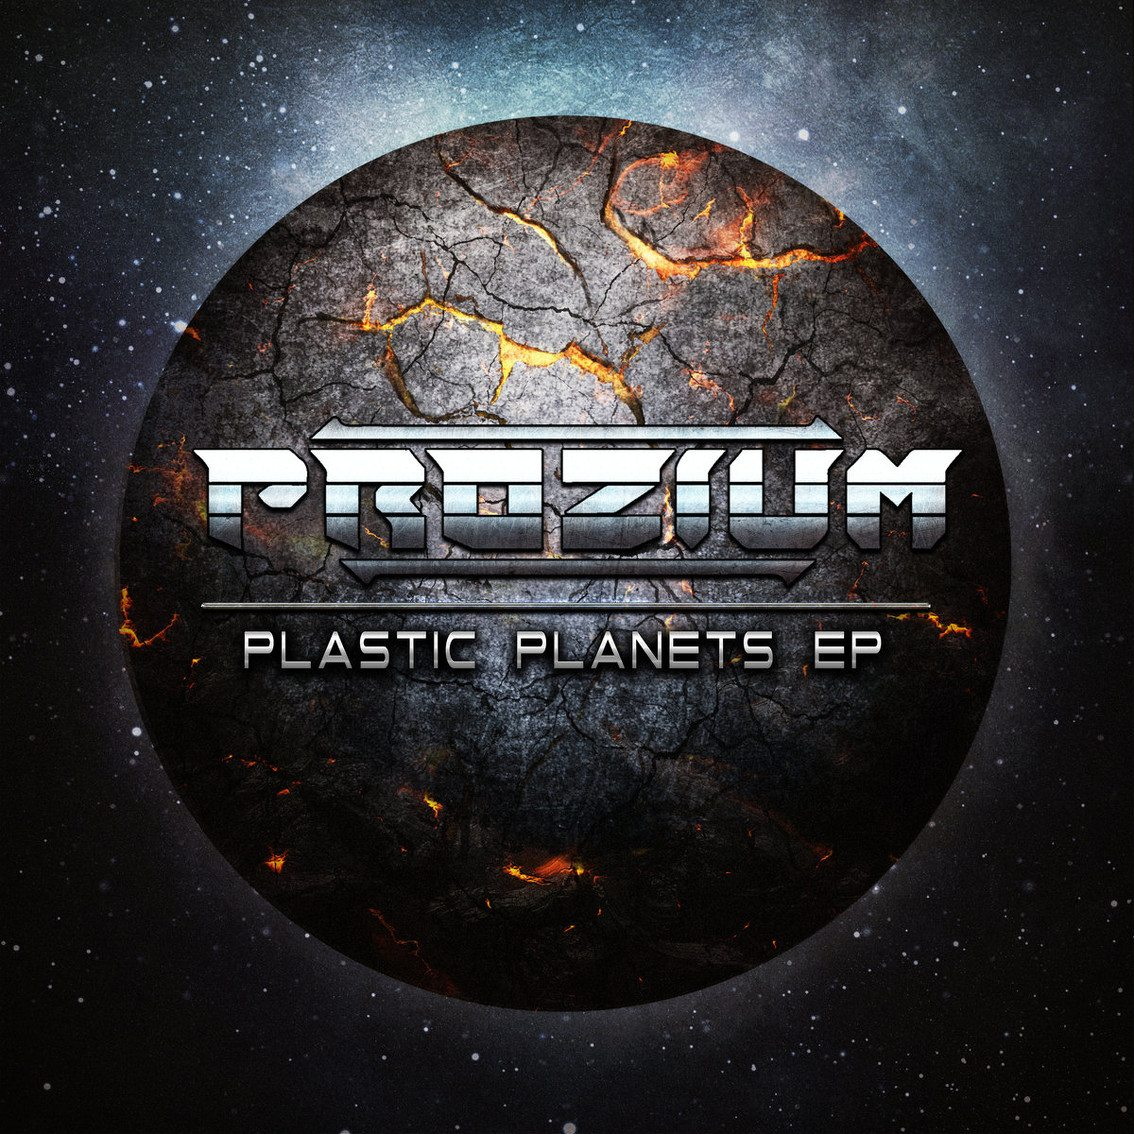 Prozium launches debut single, the electro infested dubstep'Plastic Planets' 7-tracker - listen here